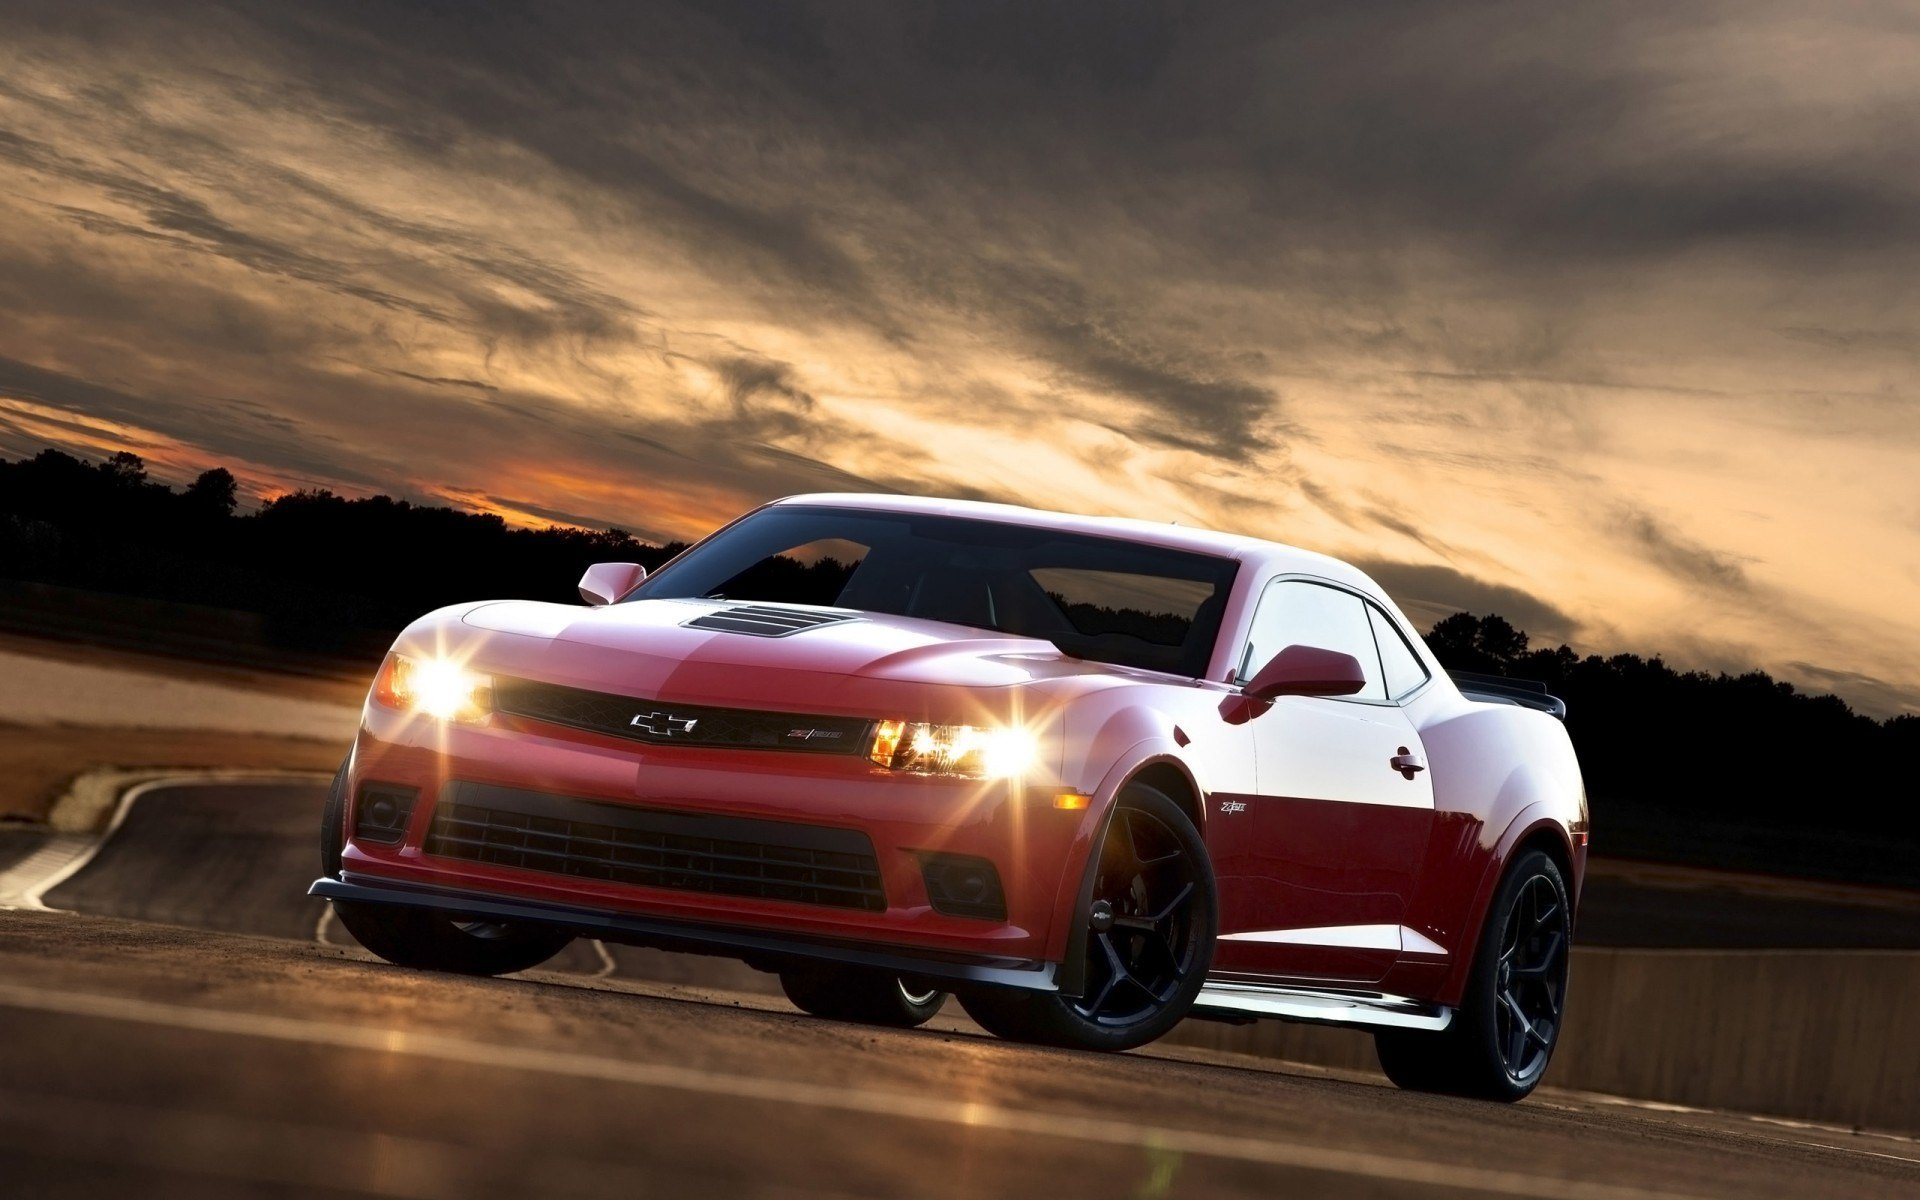 New 2015 Chevrolet Camaro Z28 Wallpaper Hd Car Wallpapers On This Month